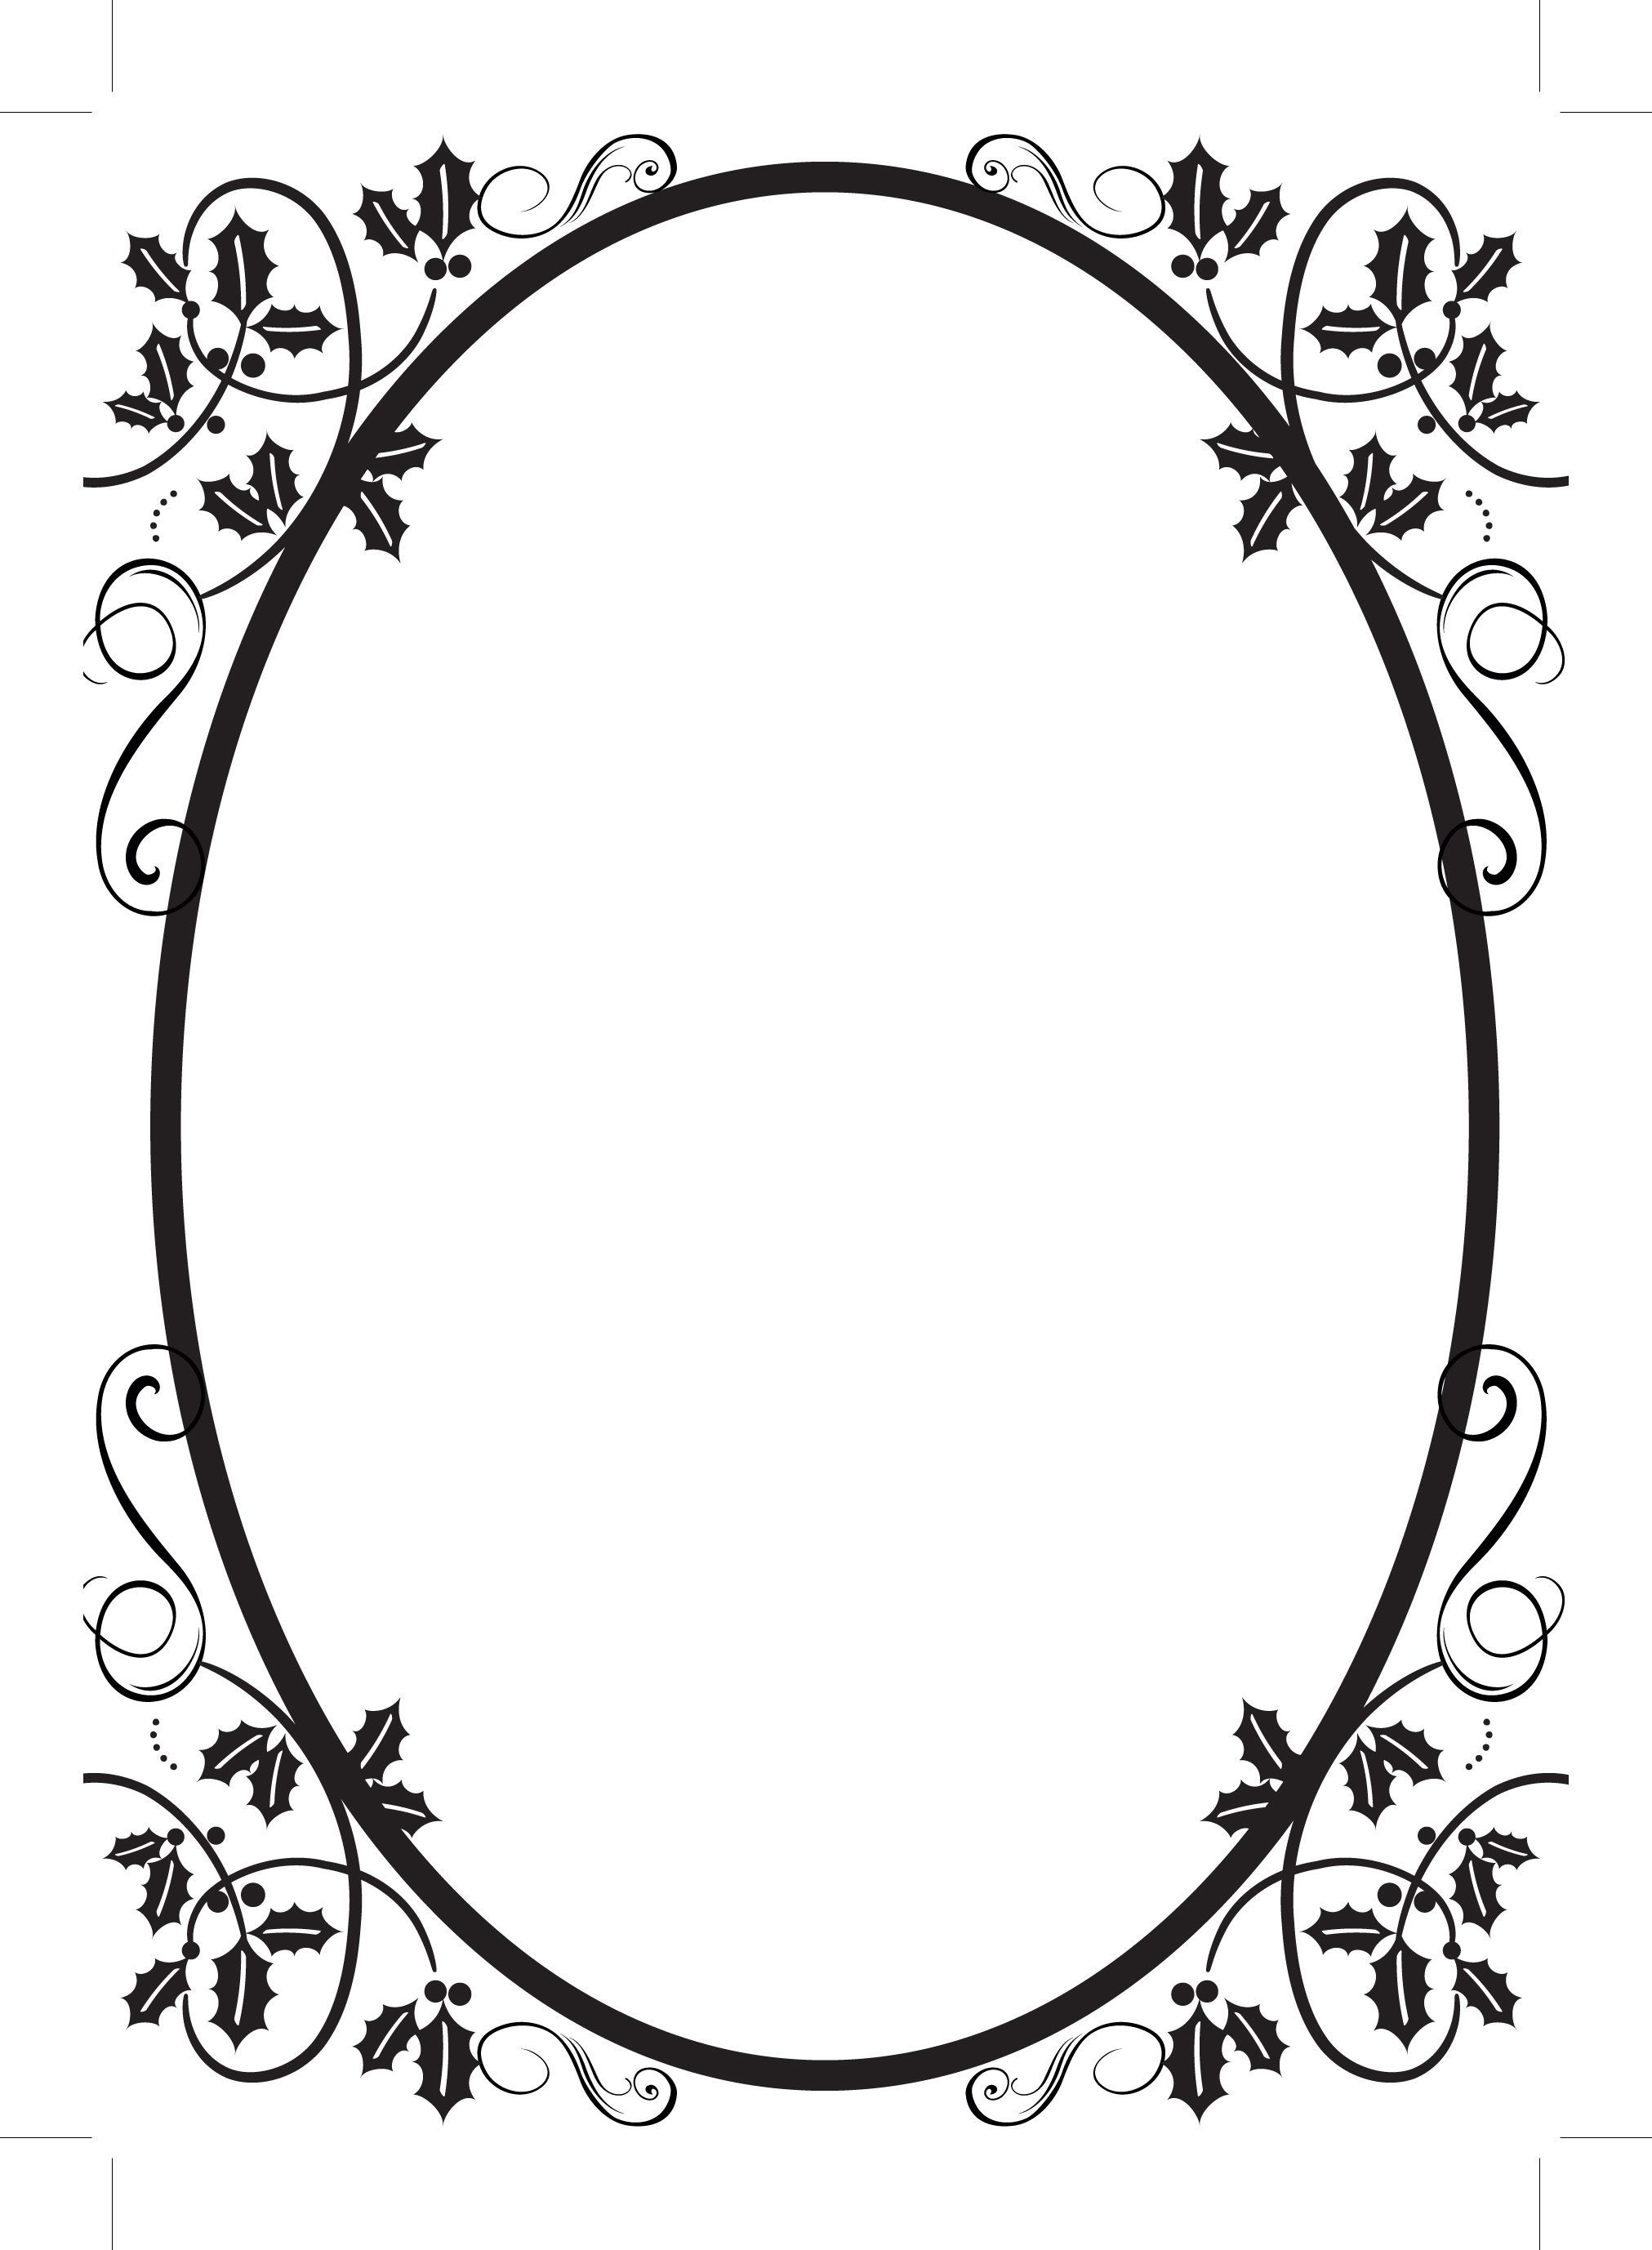 2023x2755 Free Flourish Clip Art Borders Random Search